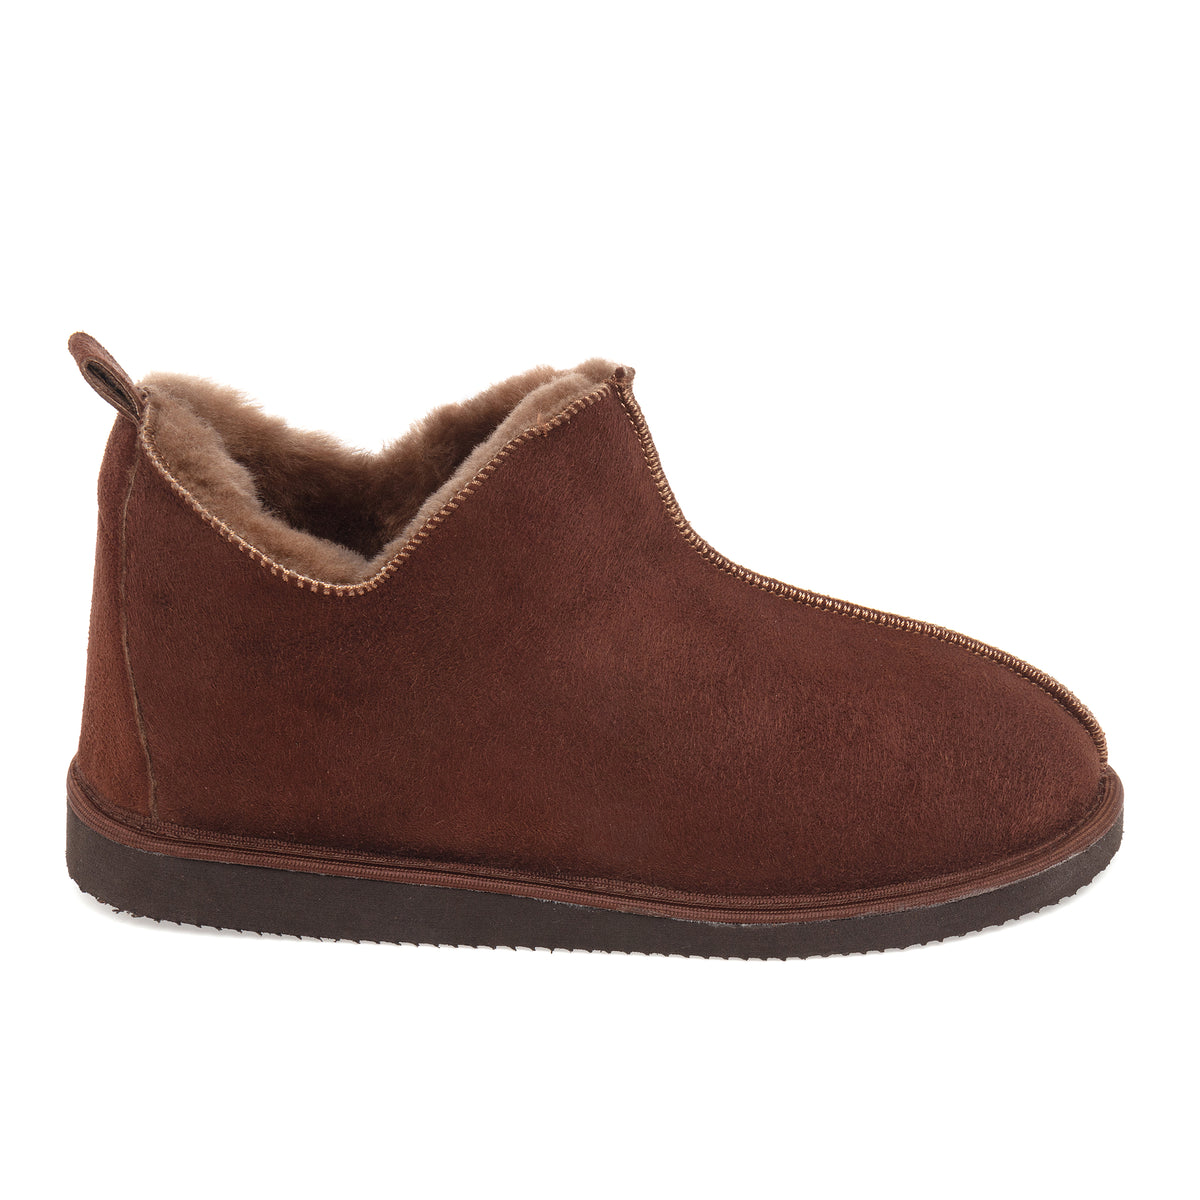 Alpin Sheepskin Slippers - Espresso